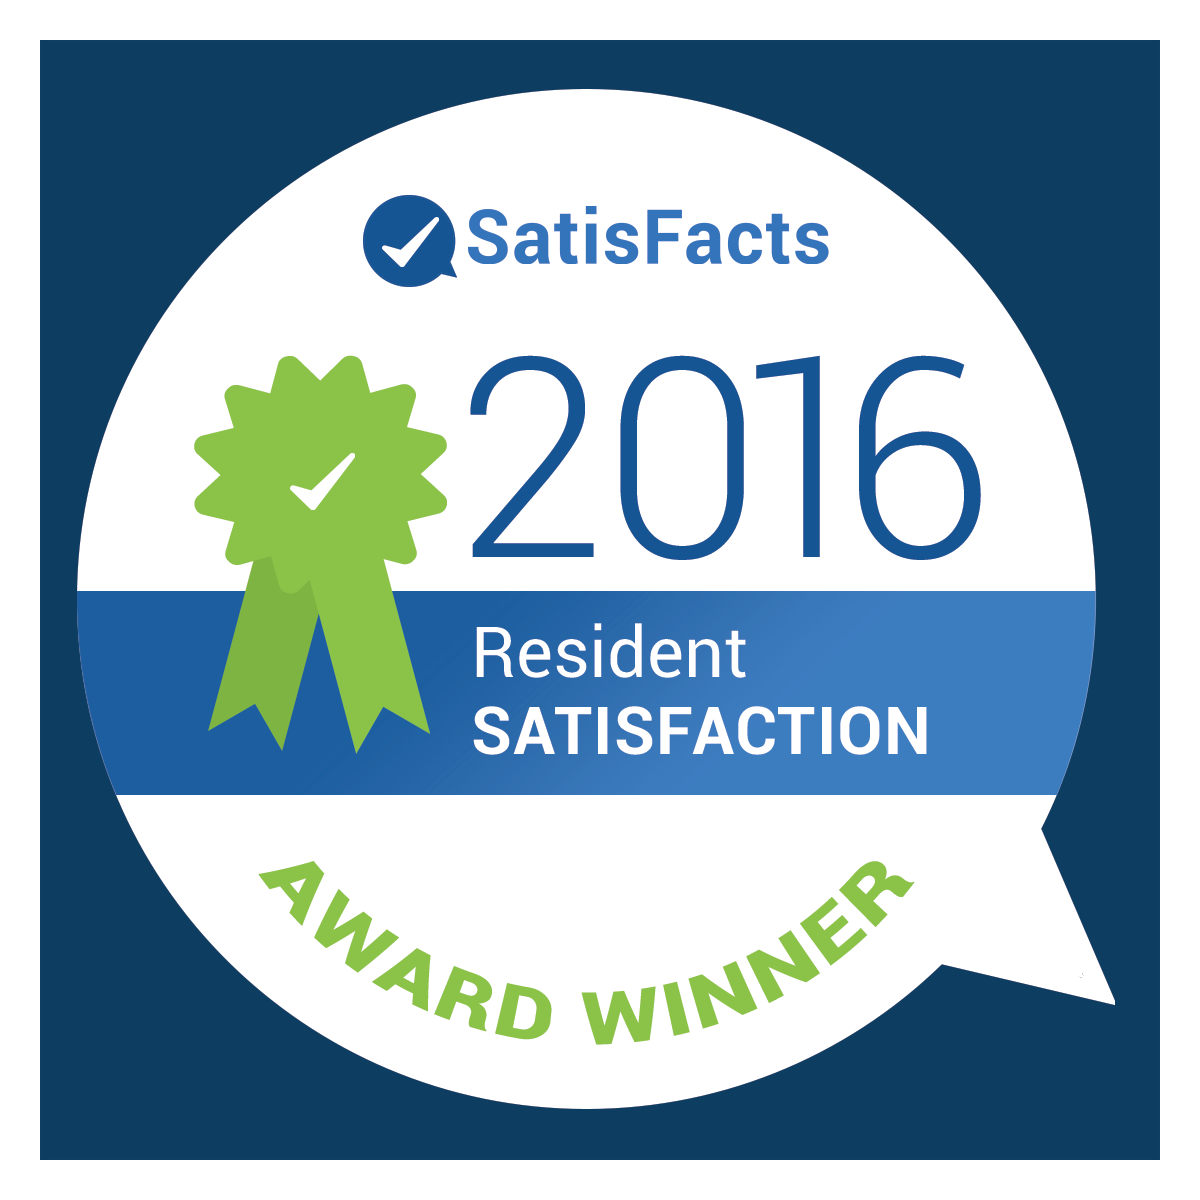 It's Official - 2016 Resident Satisfaction Winners!